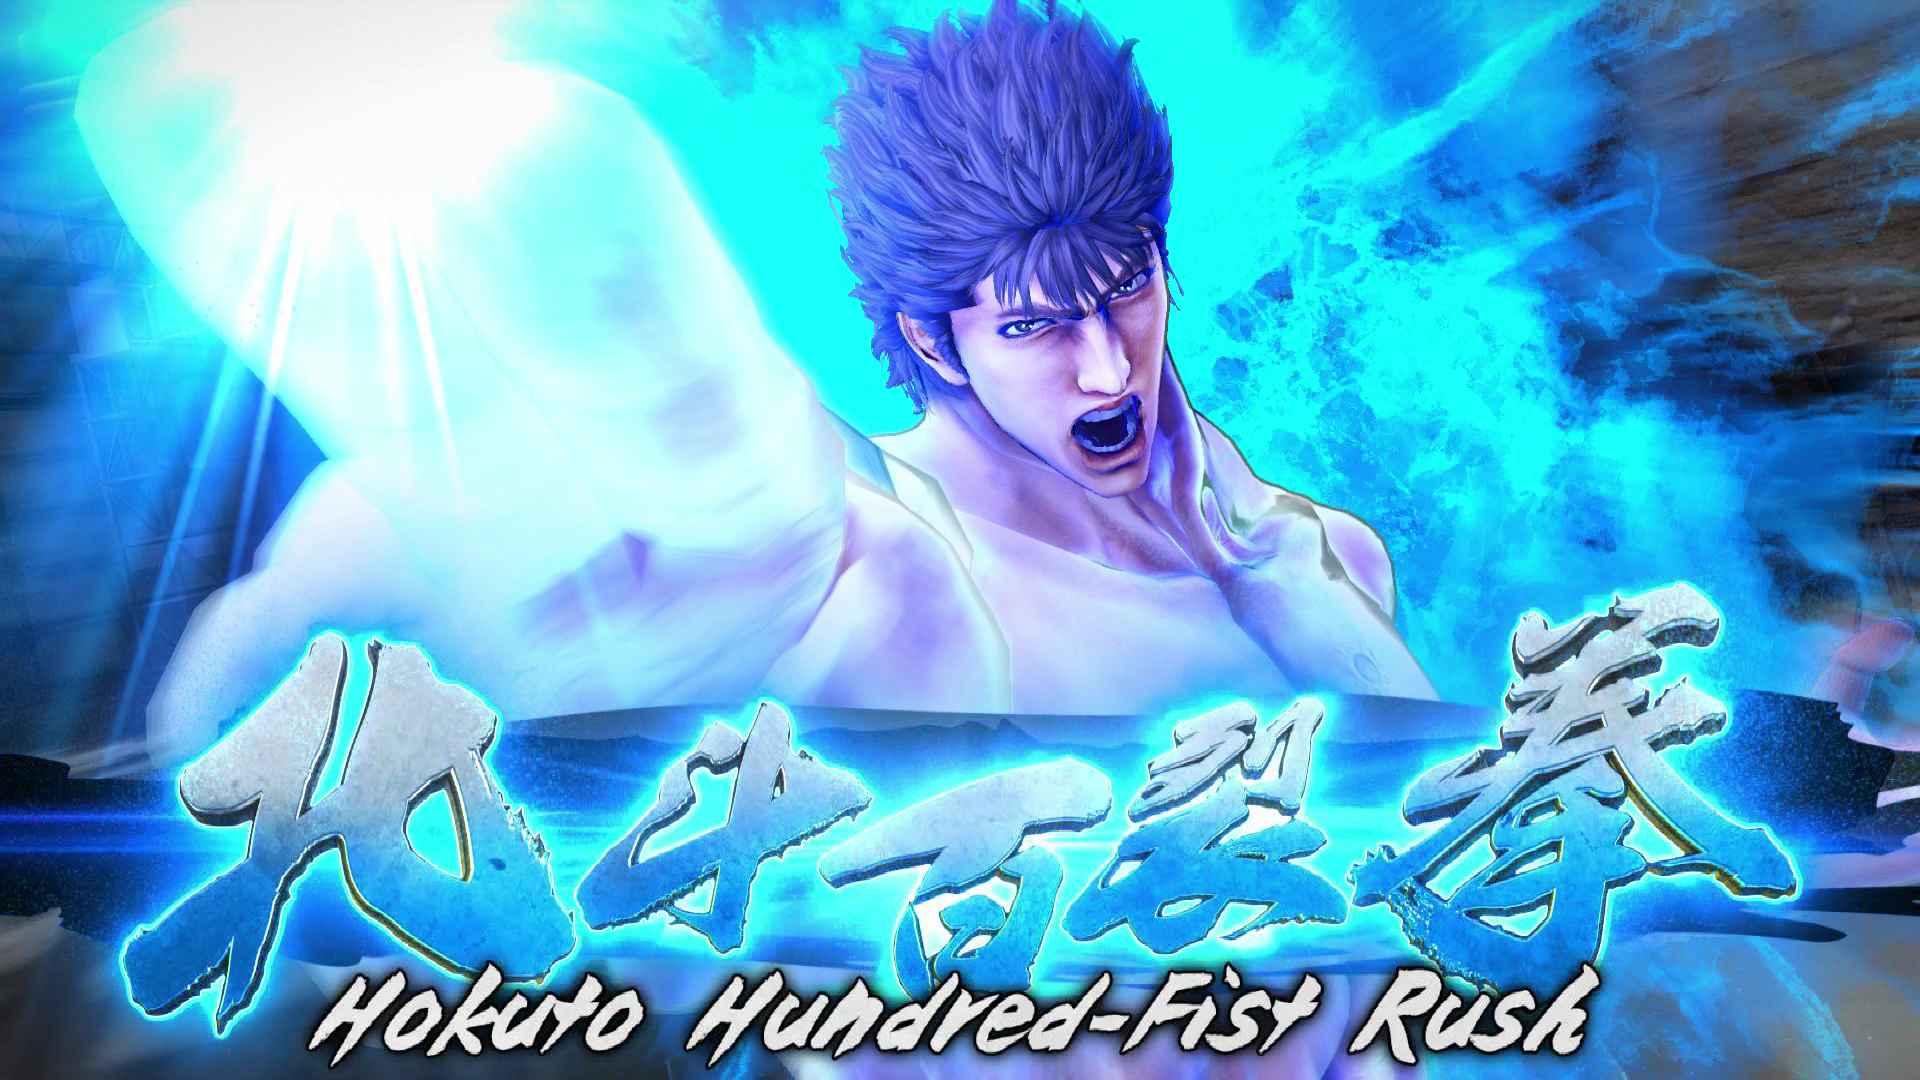 Fist of the North Star: Lost Paradise' Doesn't Live Up to